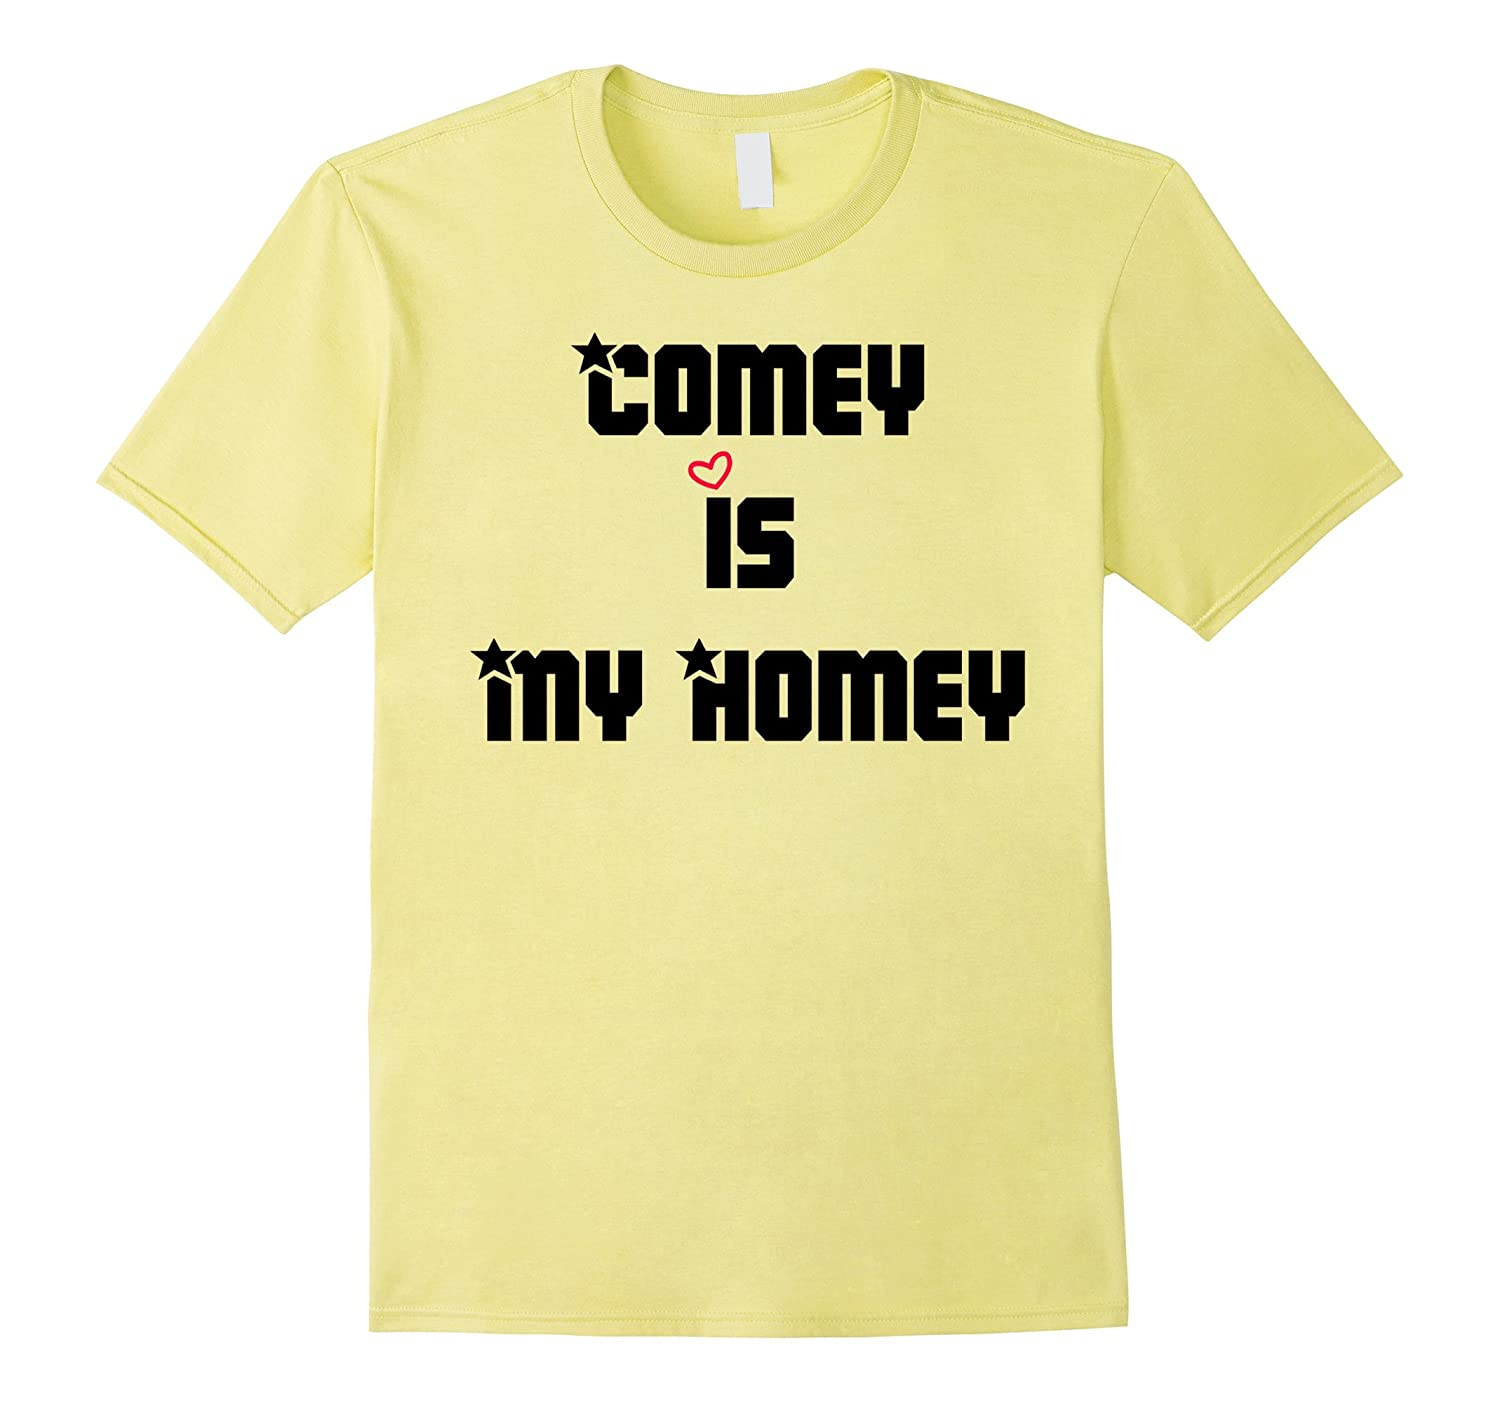 Cute design t shirt Comey Is My Homey T-Shirt for lover